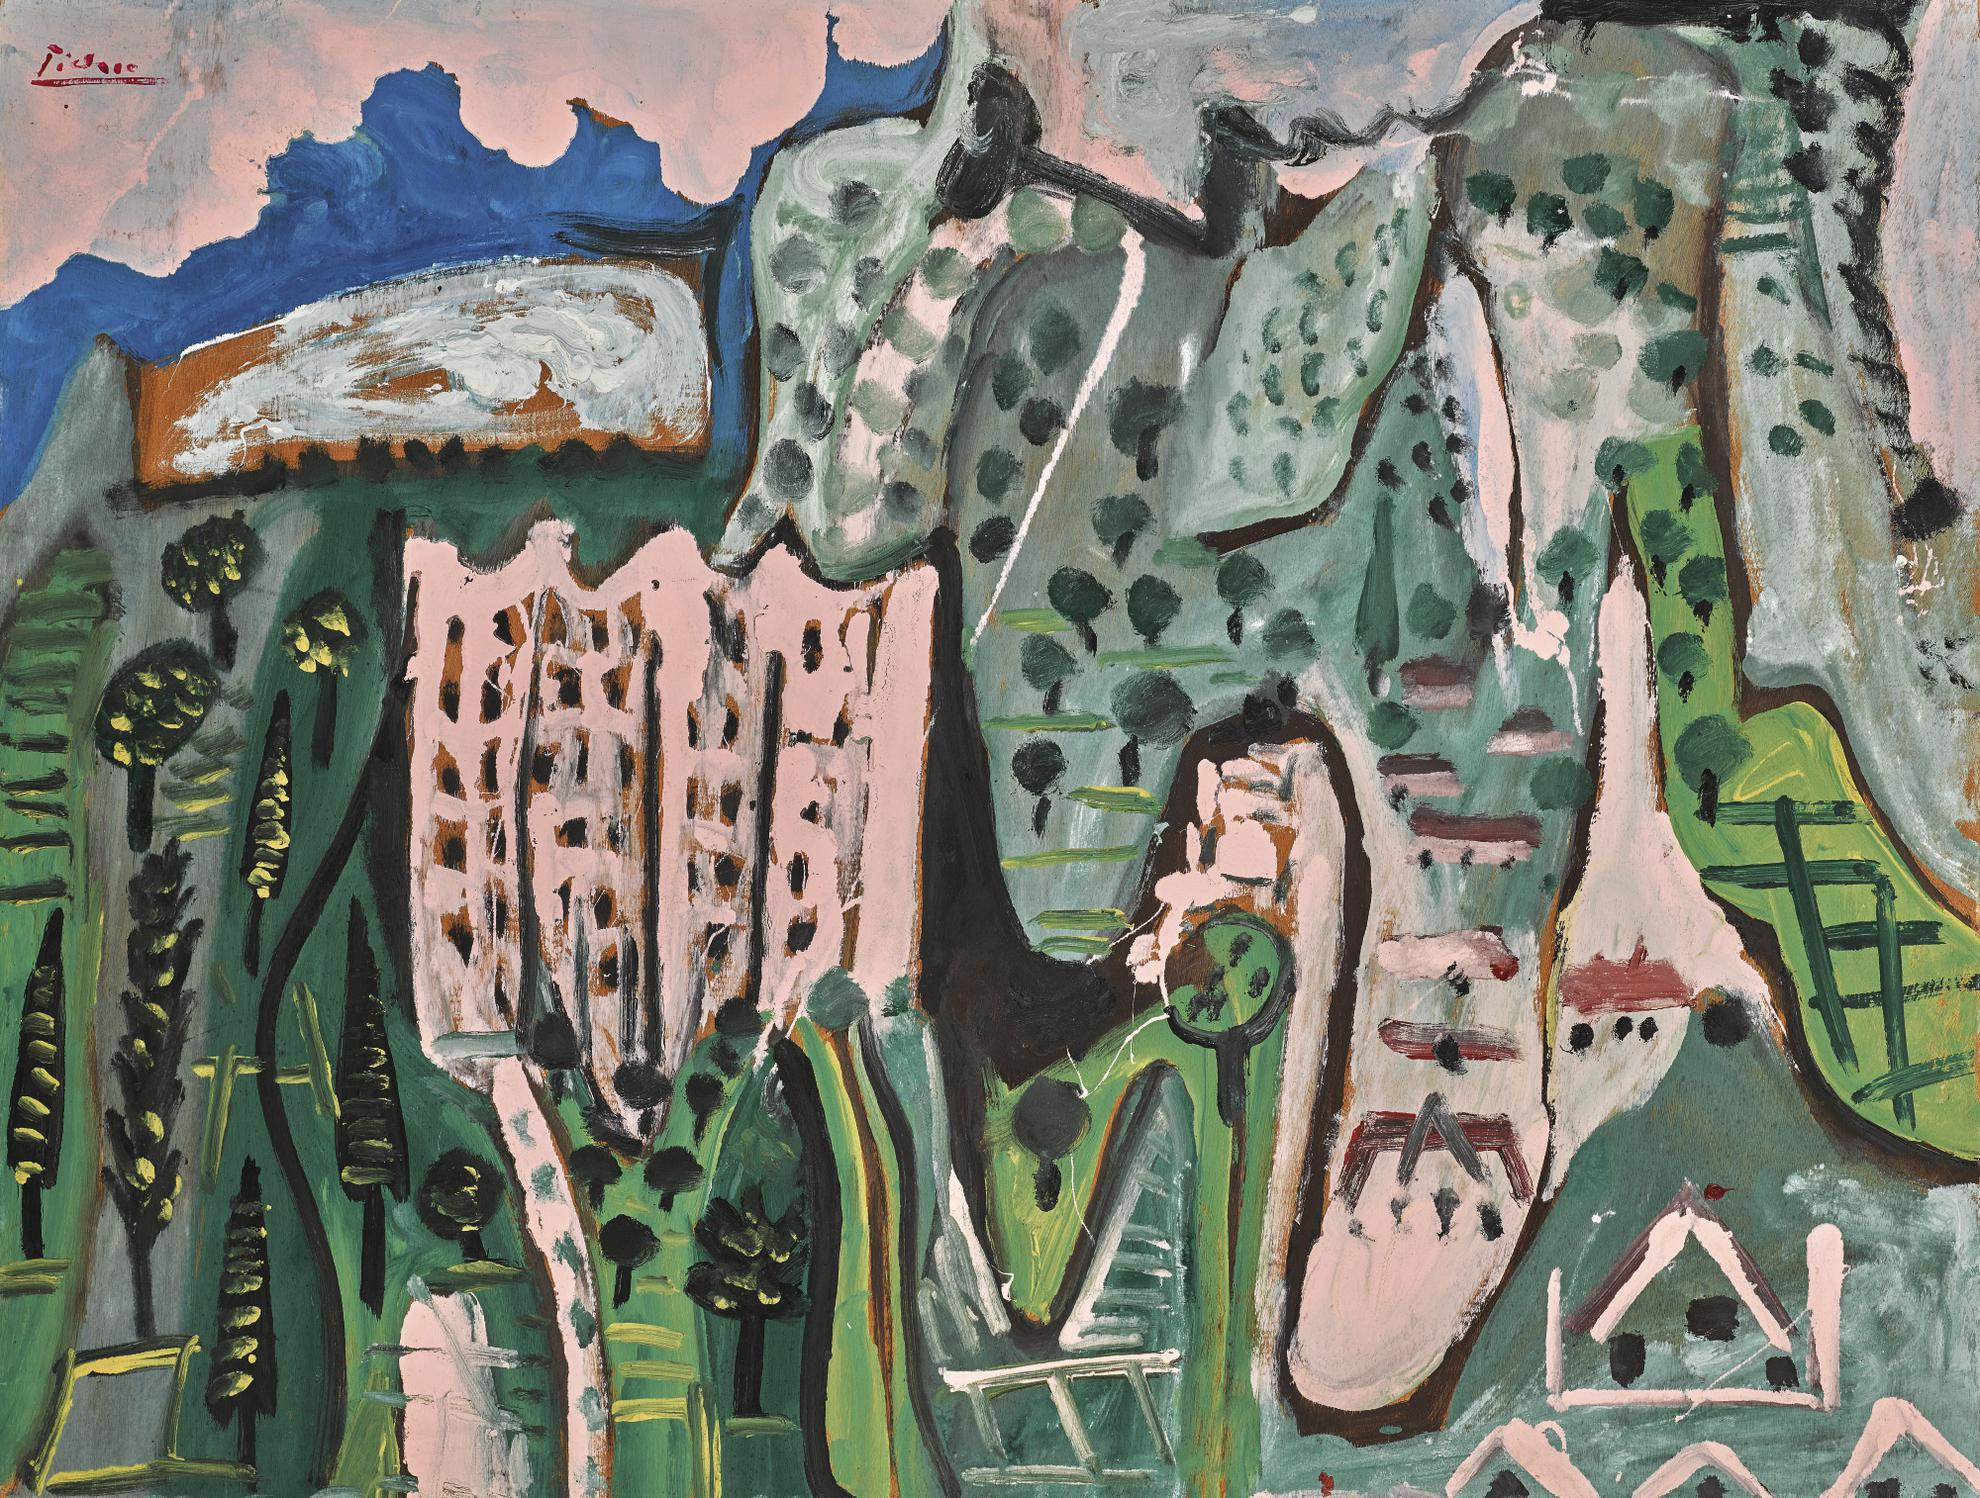 Pablo Picasso-Paysage-1965